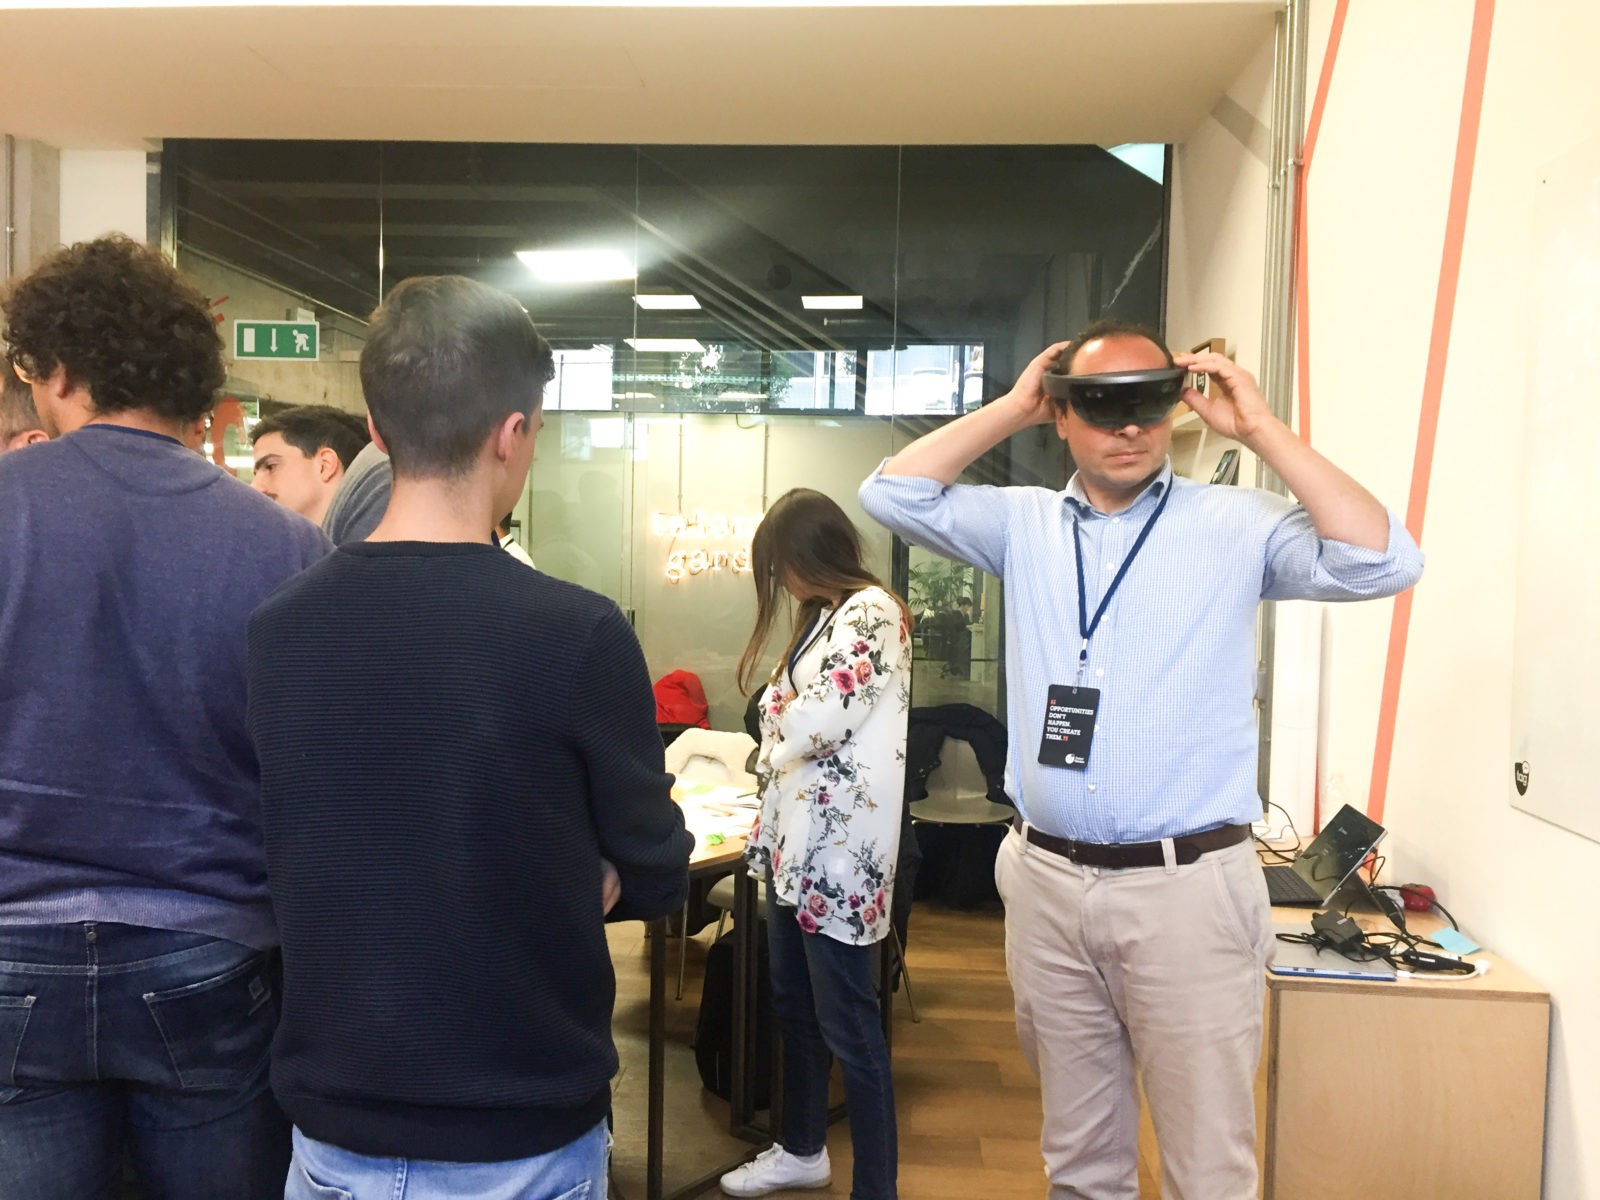 Man tries HoloLens